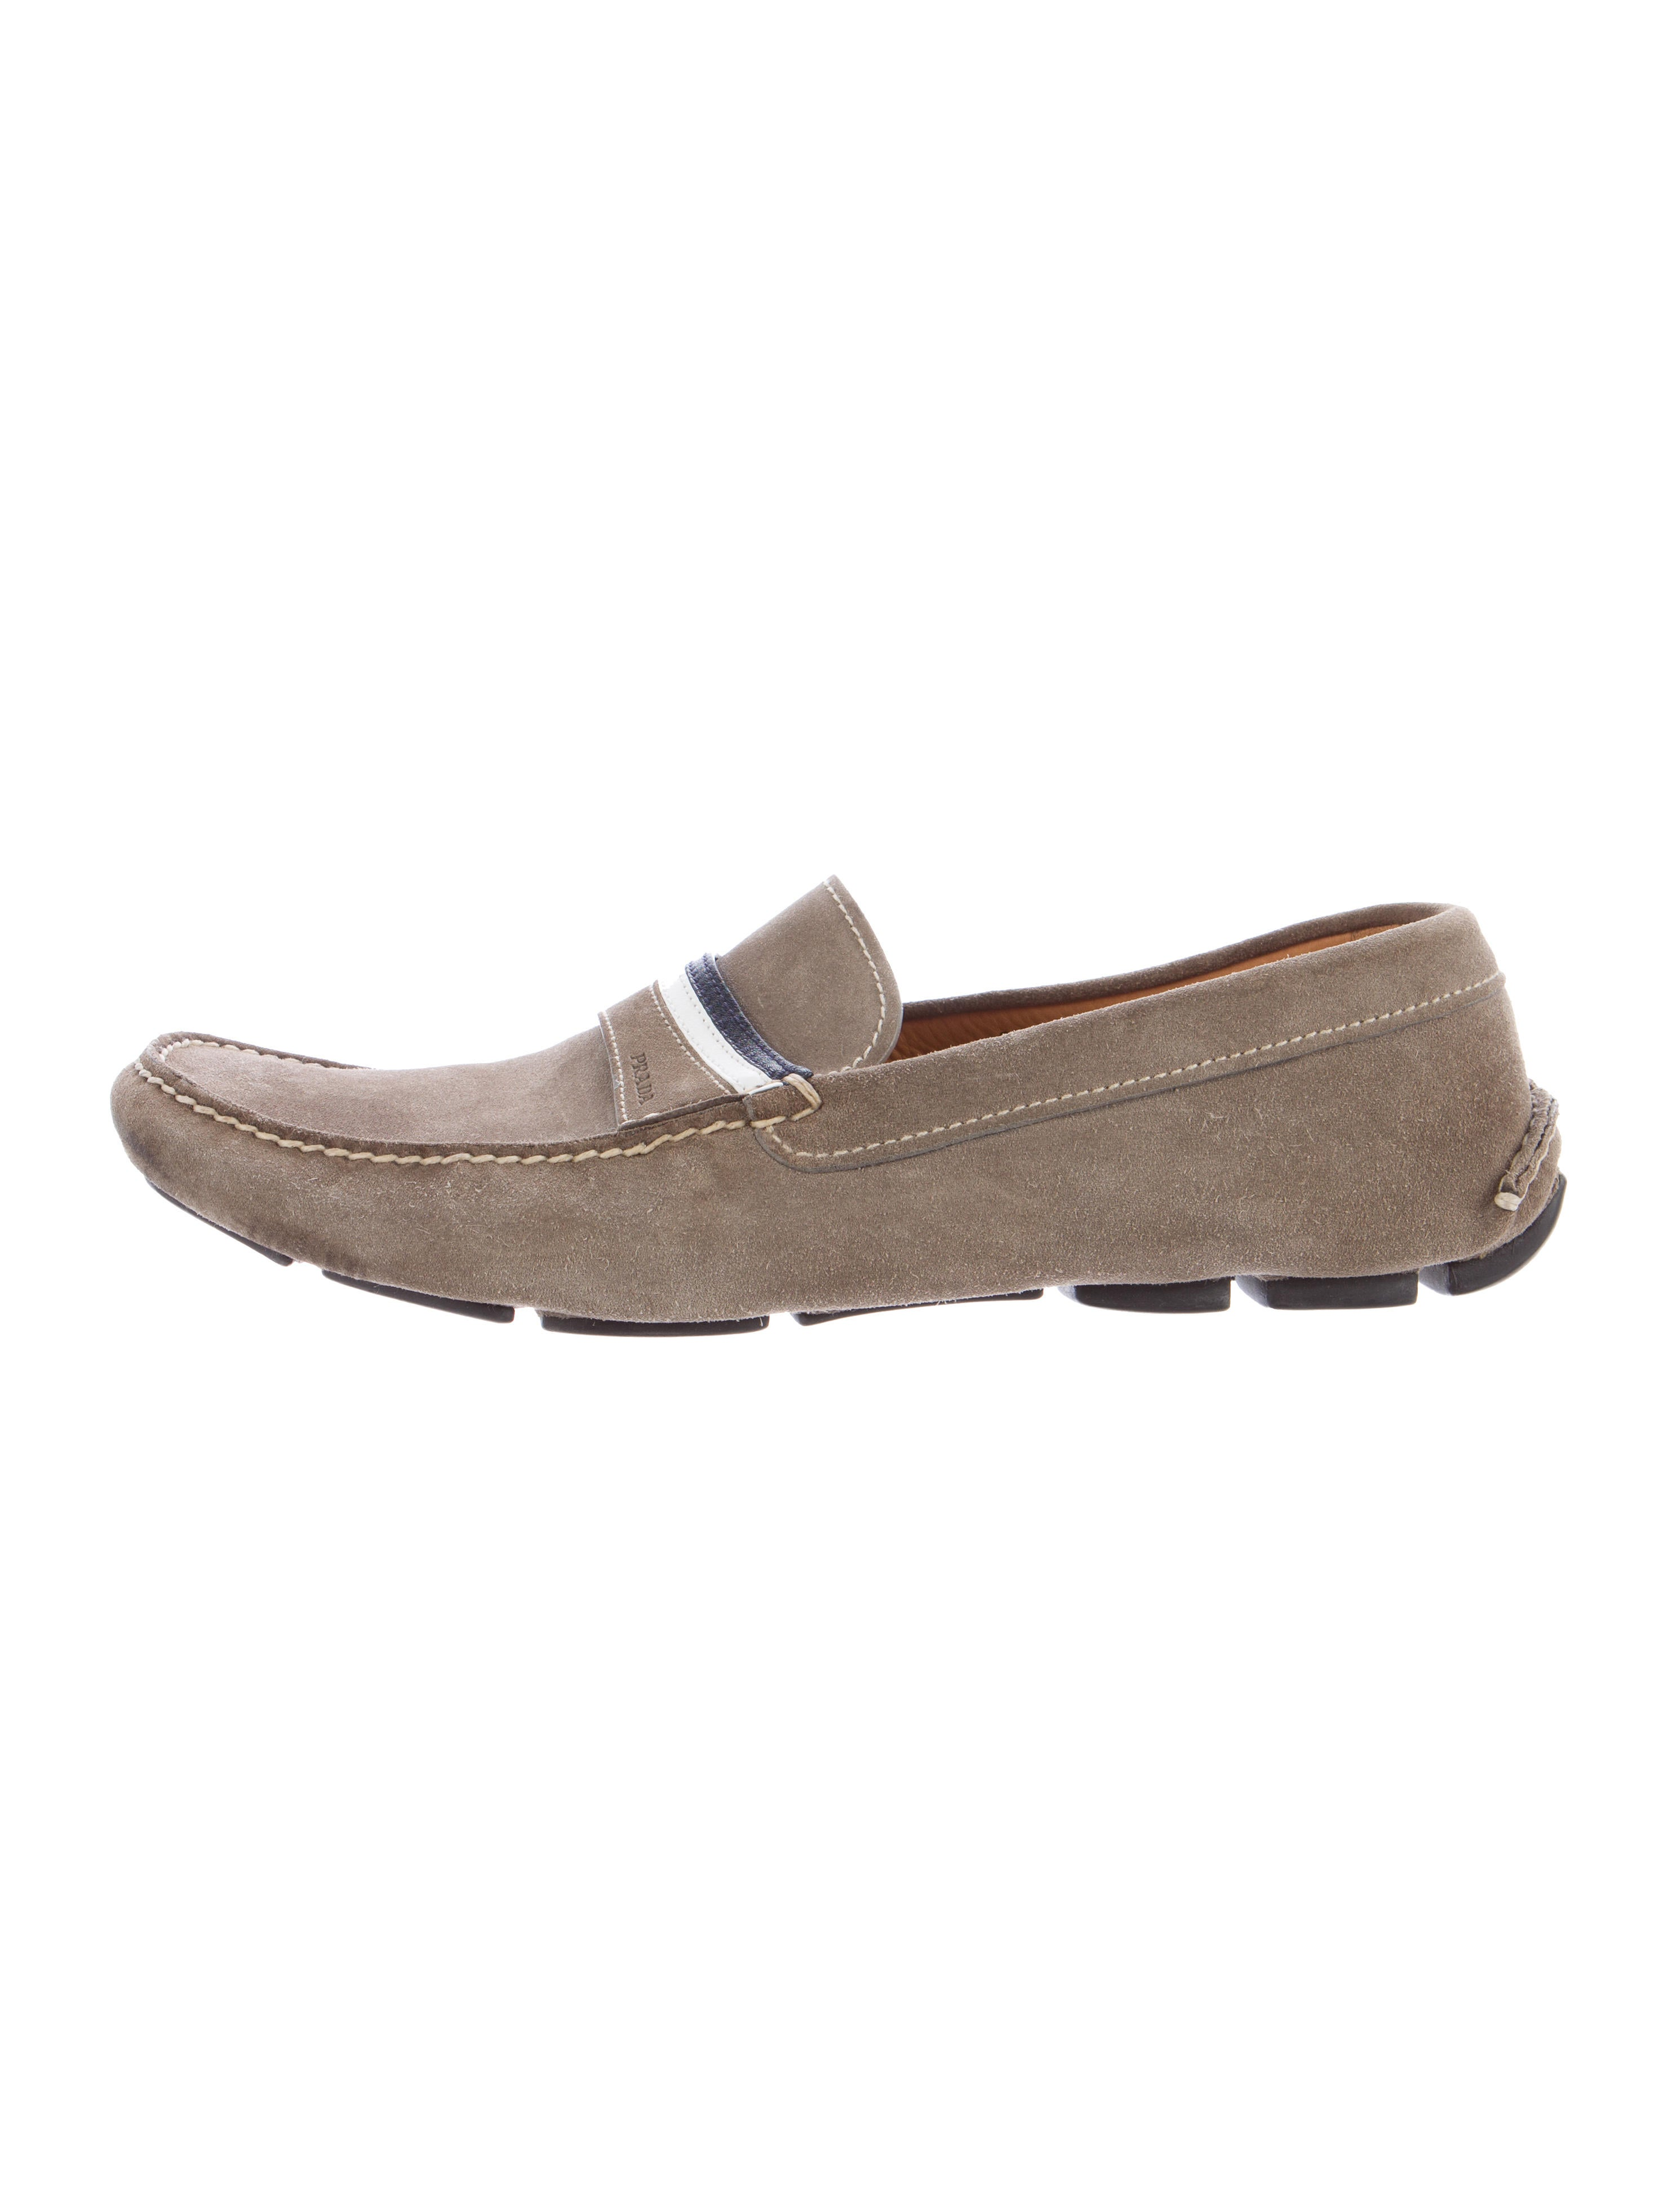 The perfect weekend shoe designed for those casual, Summer days. Soxy Loafers + Only 50 Pairs per size Produced+ Handmade in Portugal+ Premium Italian Suede The Details+ % leather lining+ Suede upper sewn by hand+ Durable rubber outsole+ Padded insole for extra comfort+ Contrast stitching+ Easy exchanges / returns W.